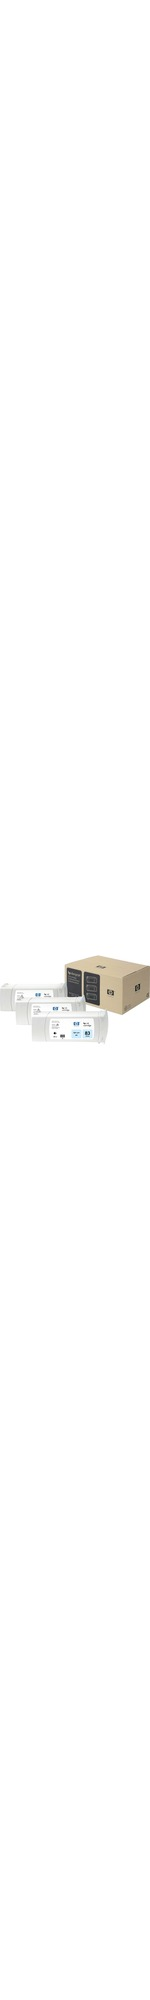 HP No. 83 Ink Cartridge - Light Cyan